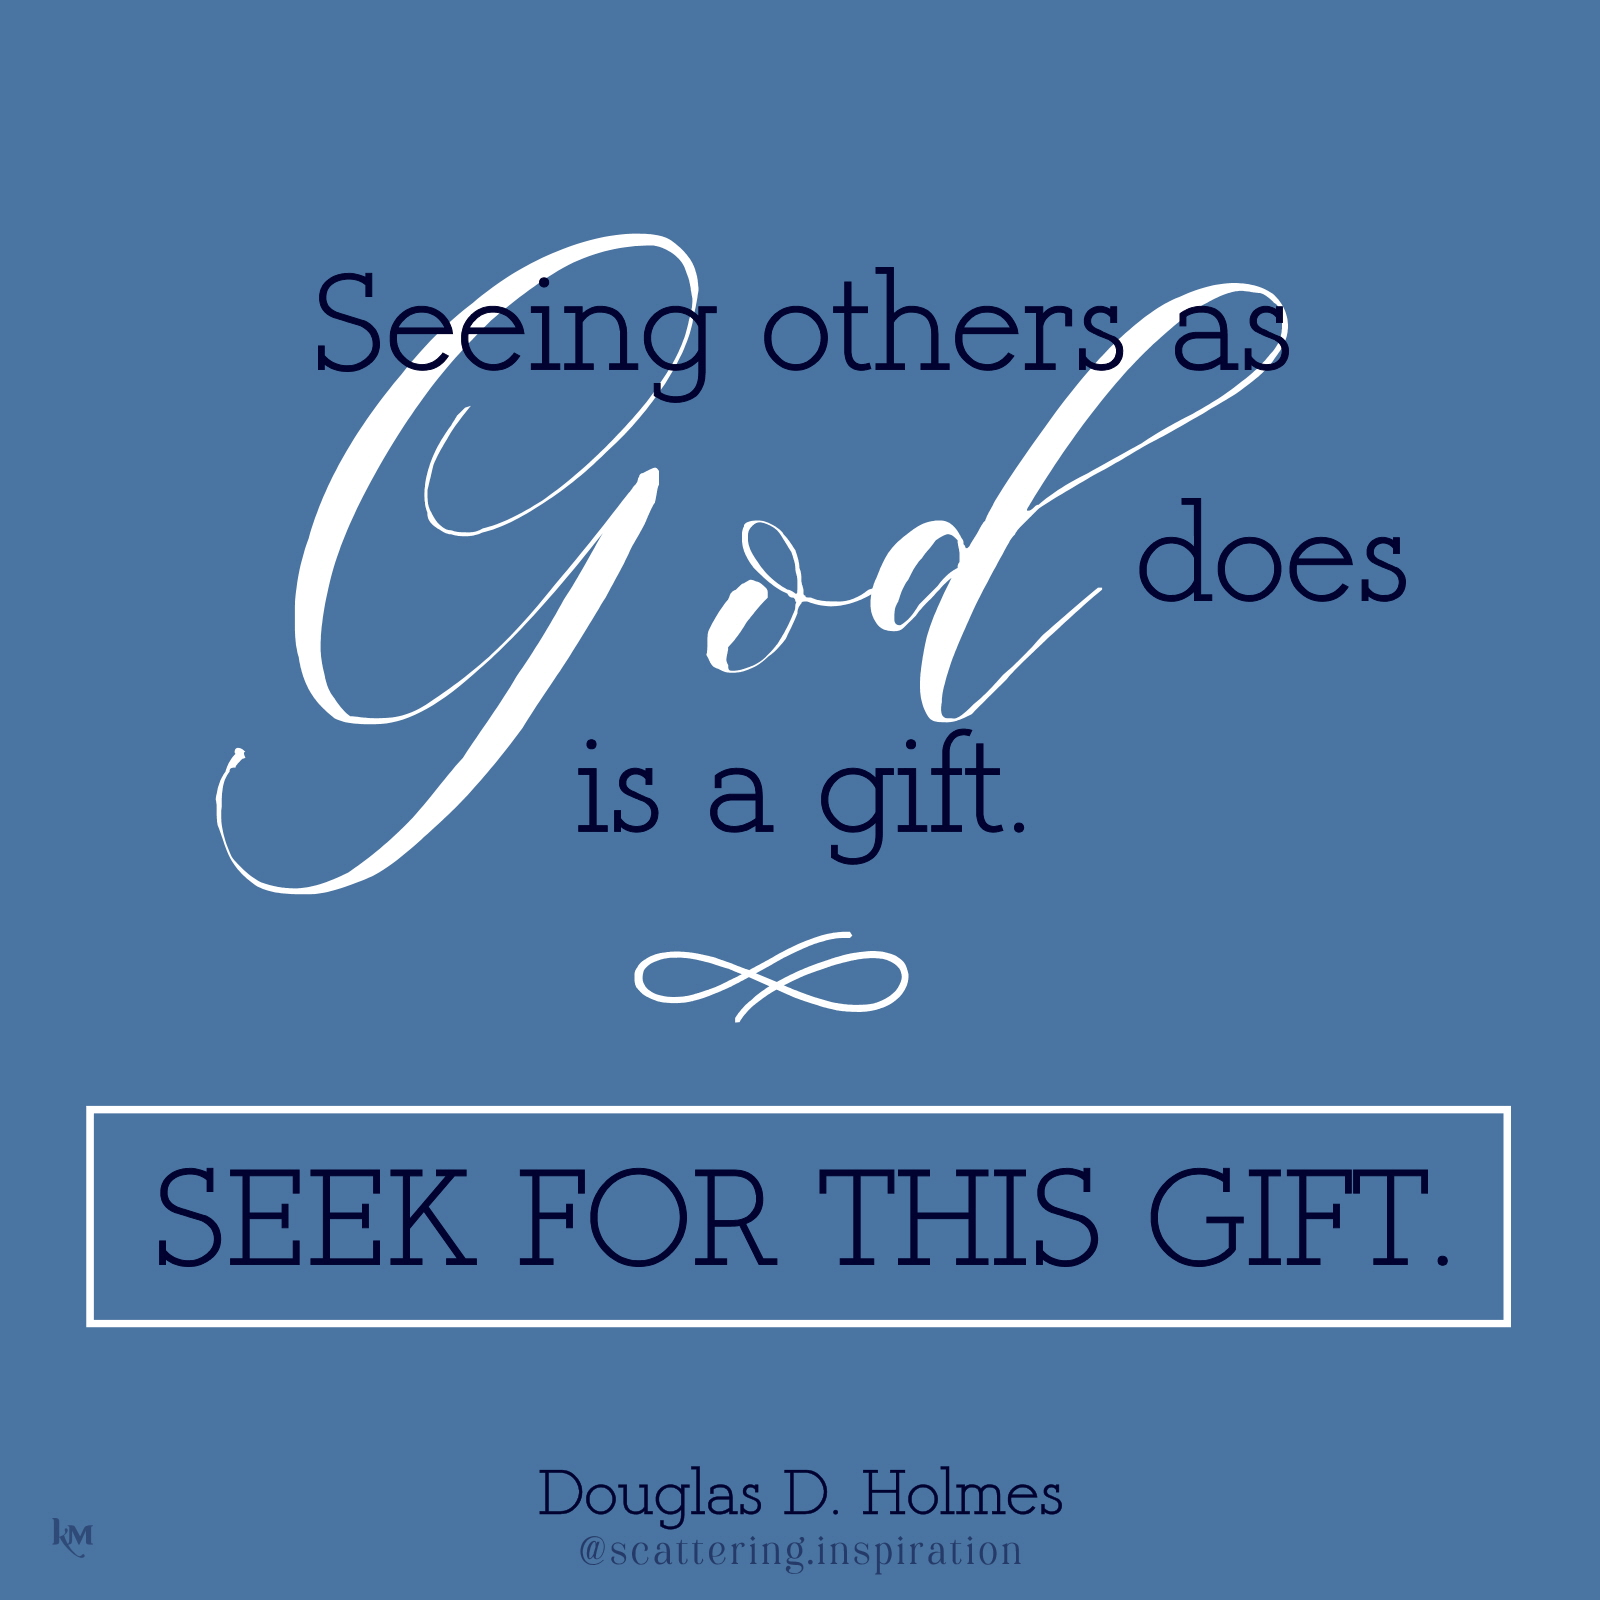 seek for this gift